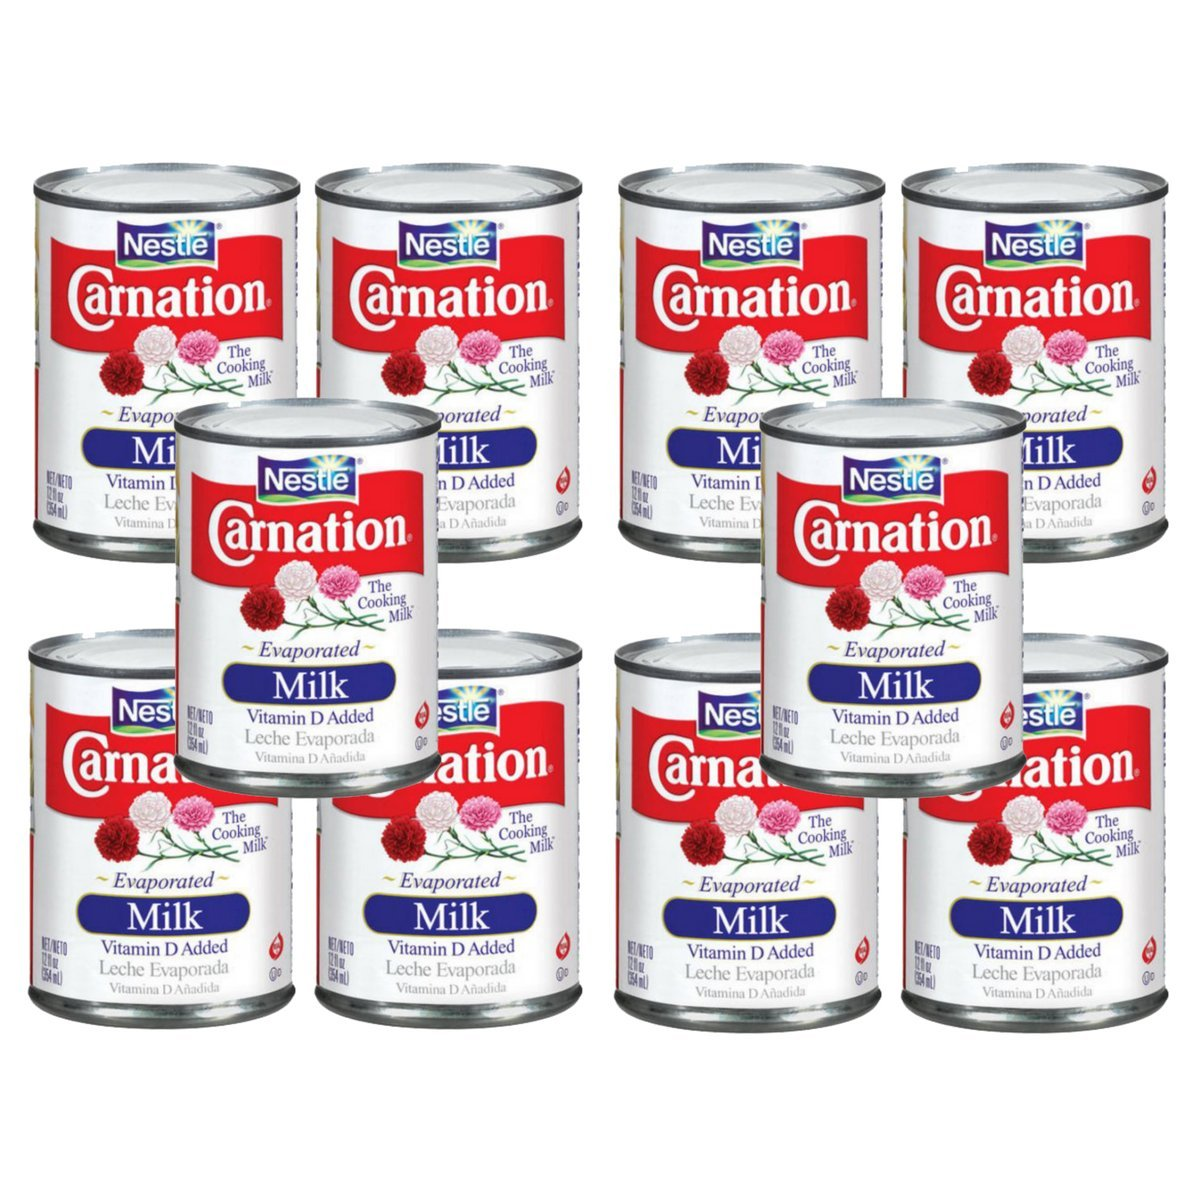 Amazon.com : Nestlé Carnation Evaporated Milk 12oz (Pack of 10) : Grocery & Gourmet Food